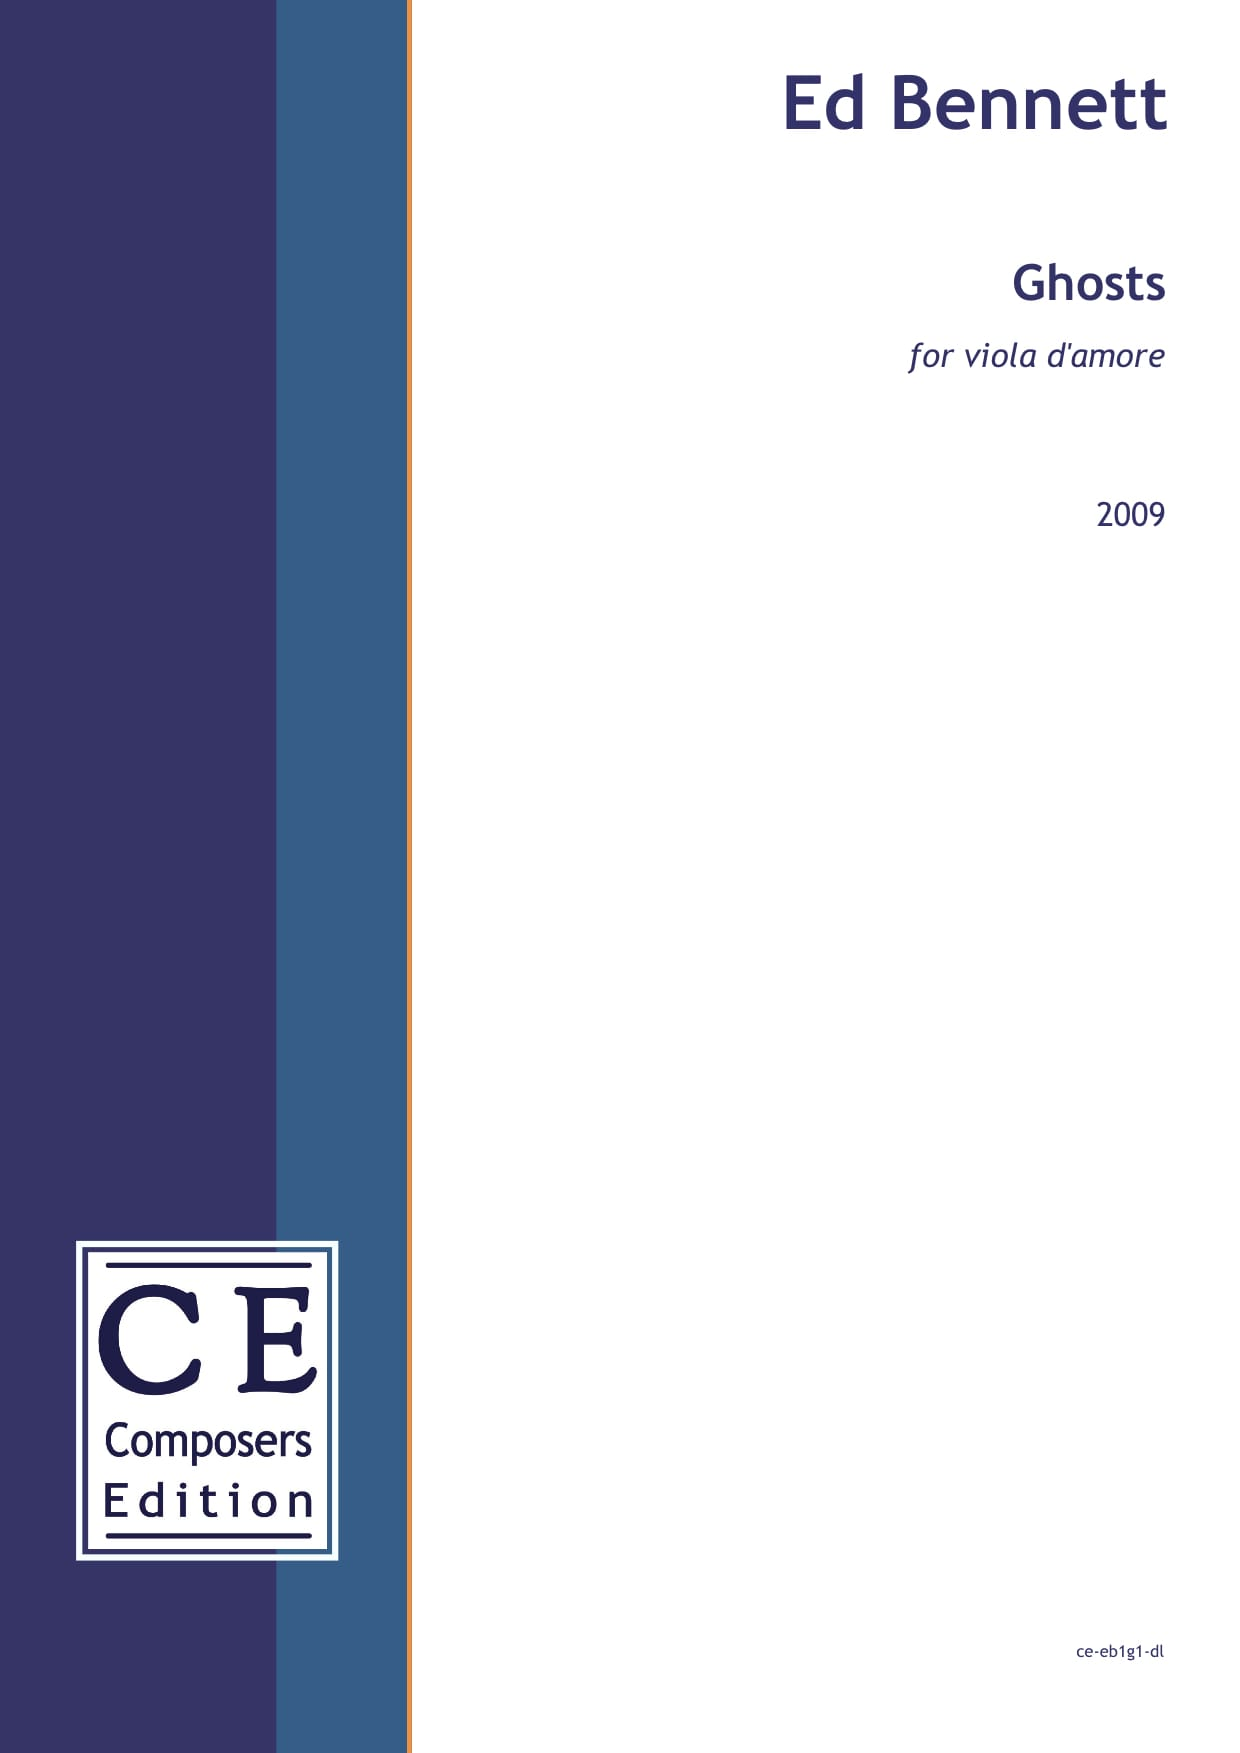 Ed Bennett: Ghosts for viola d'amore